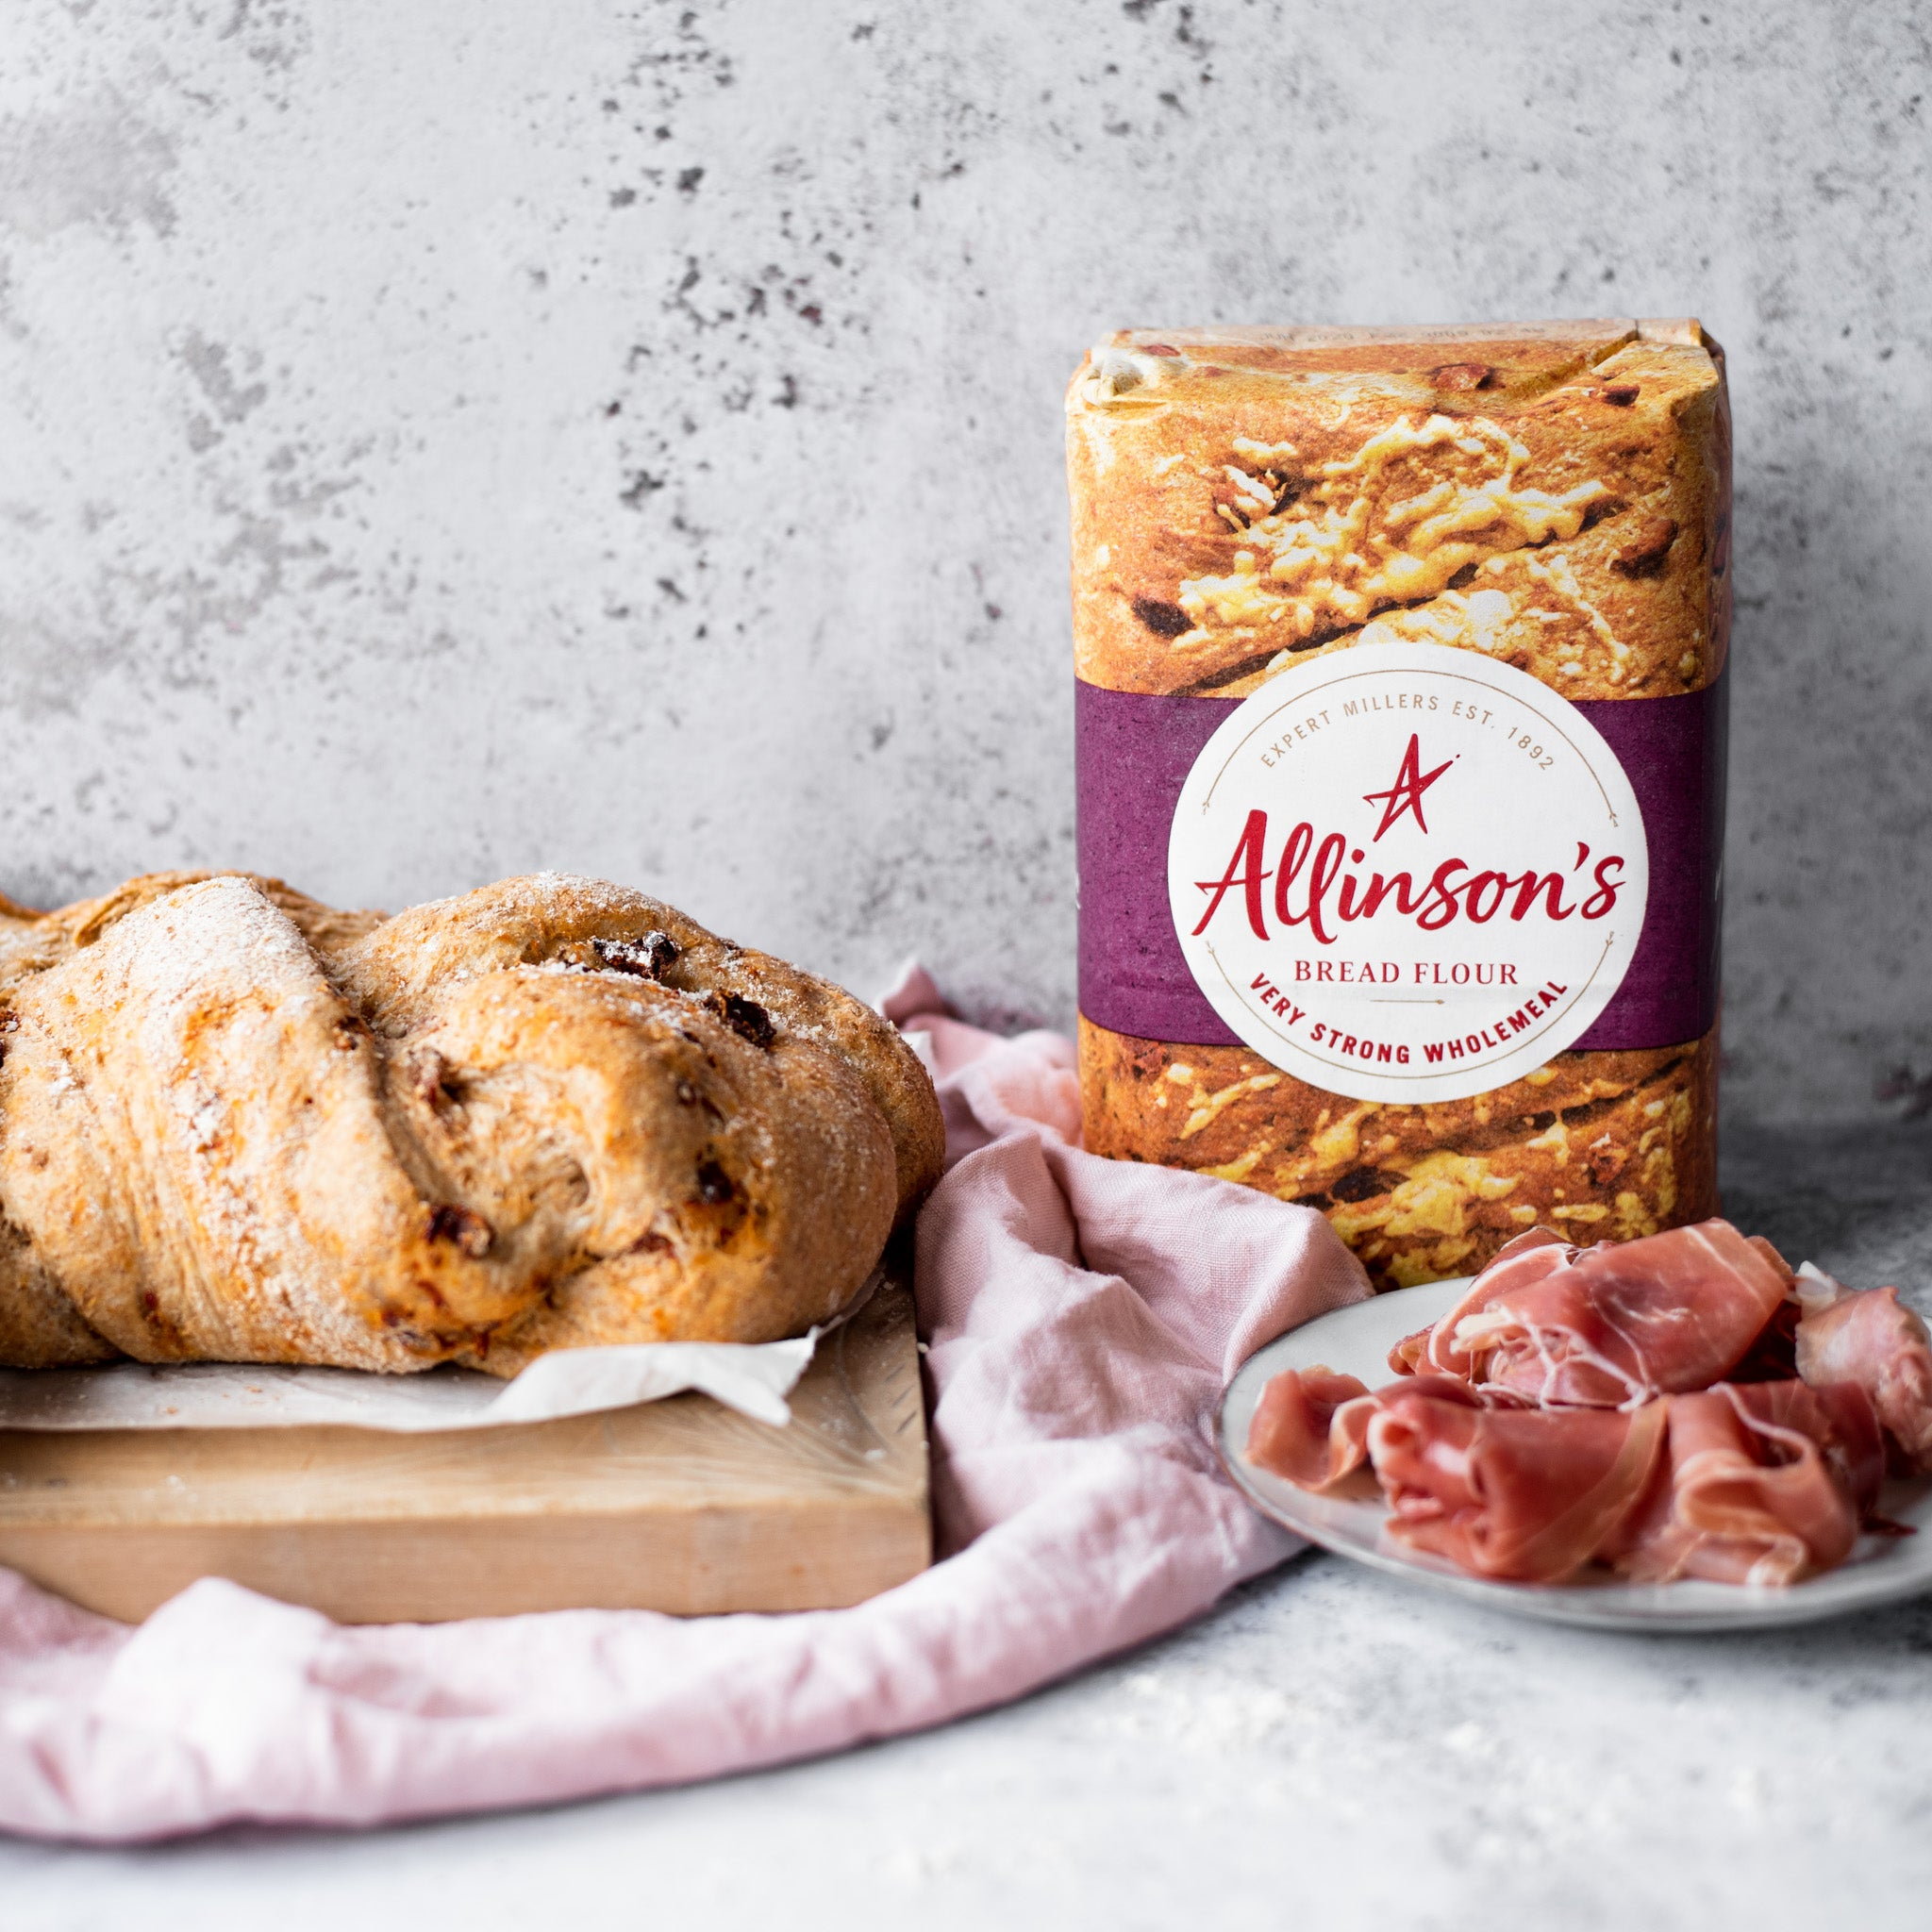 Allinsons-Proscuitto-Sun-Dried-Tomato-Plait-1-1-Baking-Mad-1.jpg